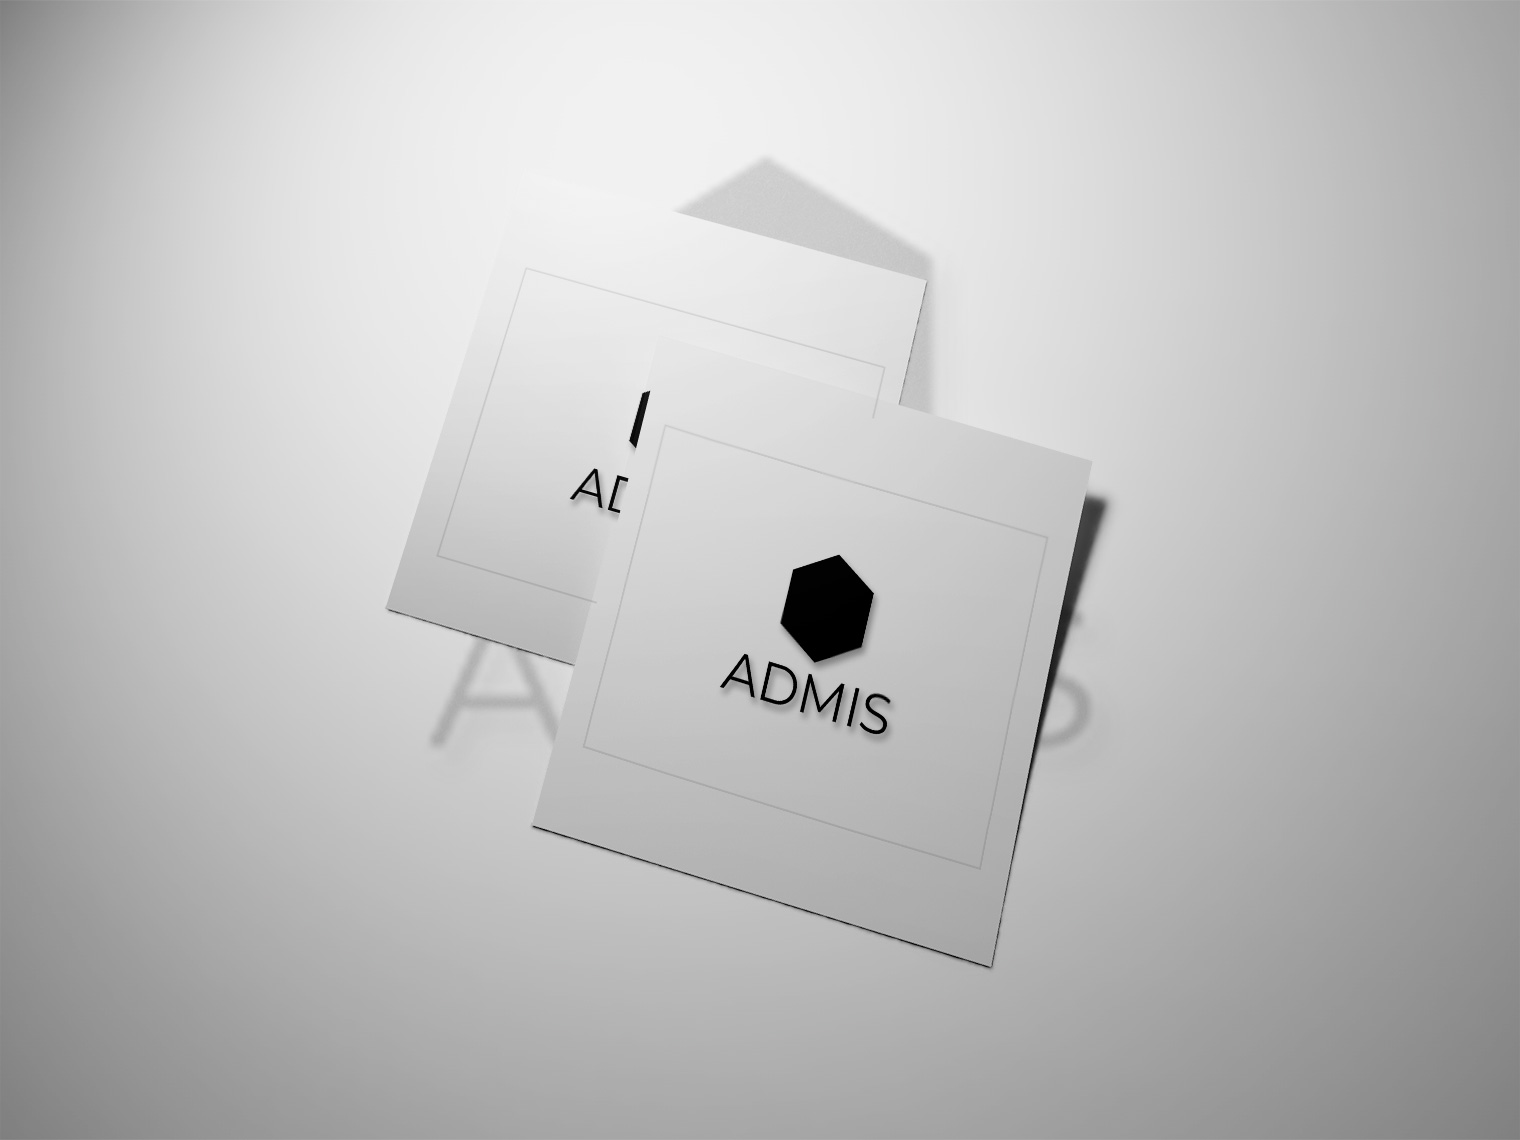 A image of two pieces of white paper with both of them displaying the Admis Logo which is black